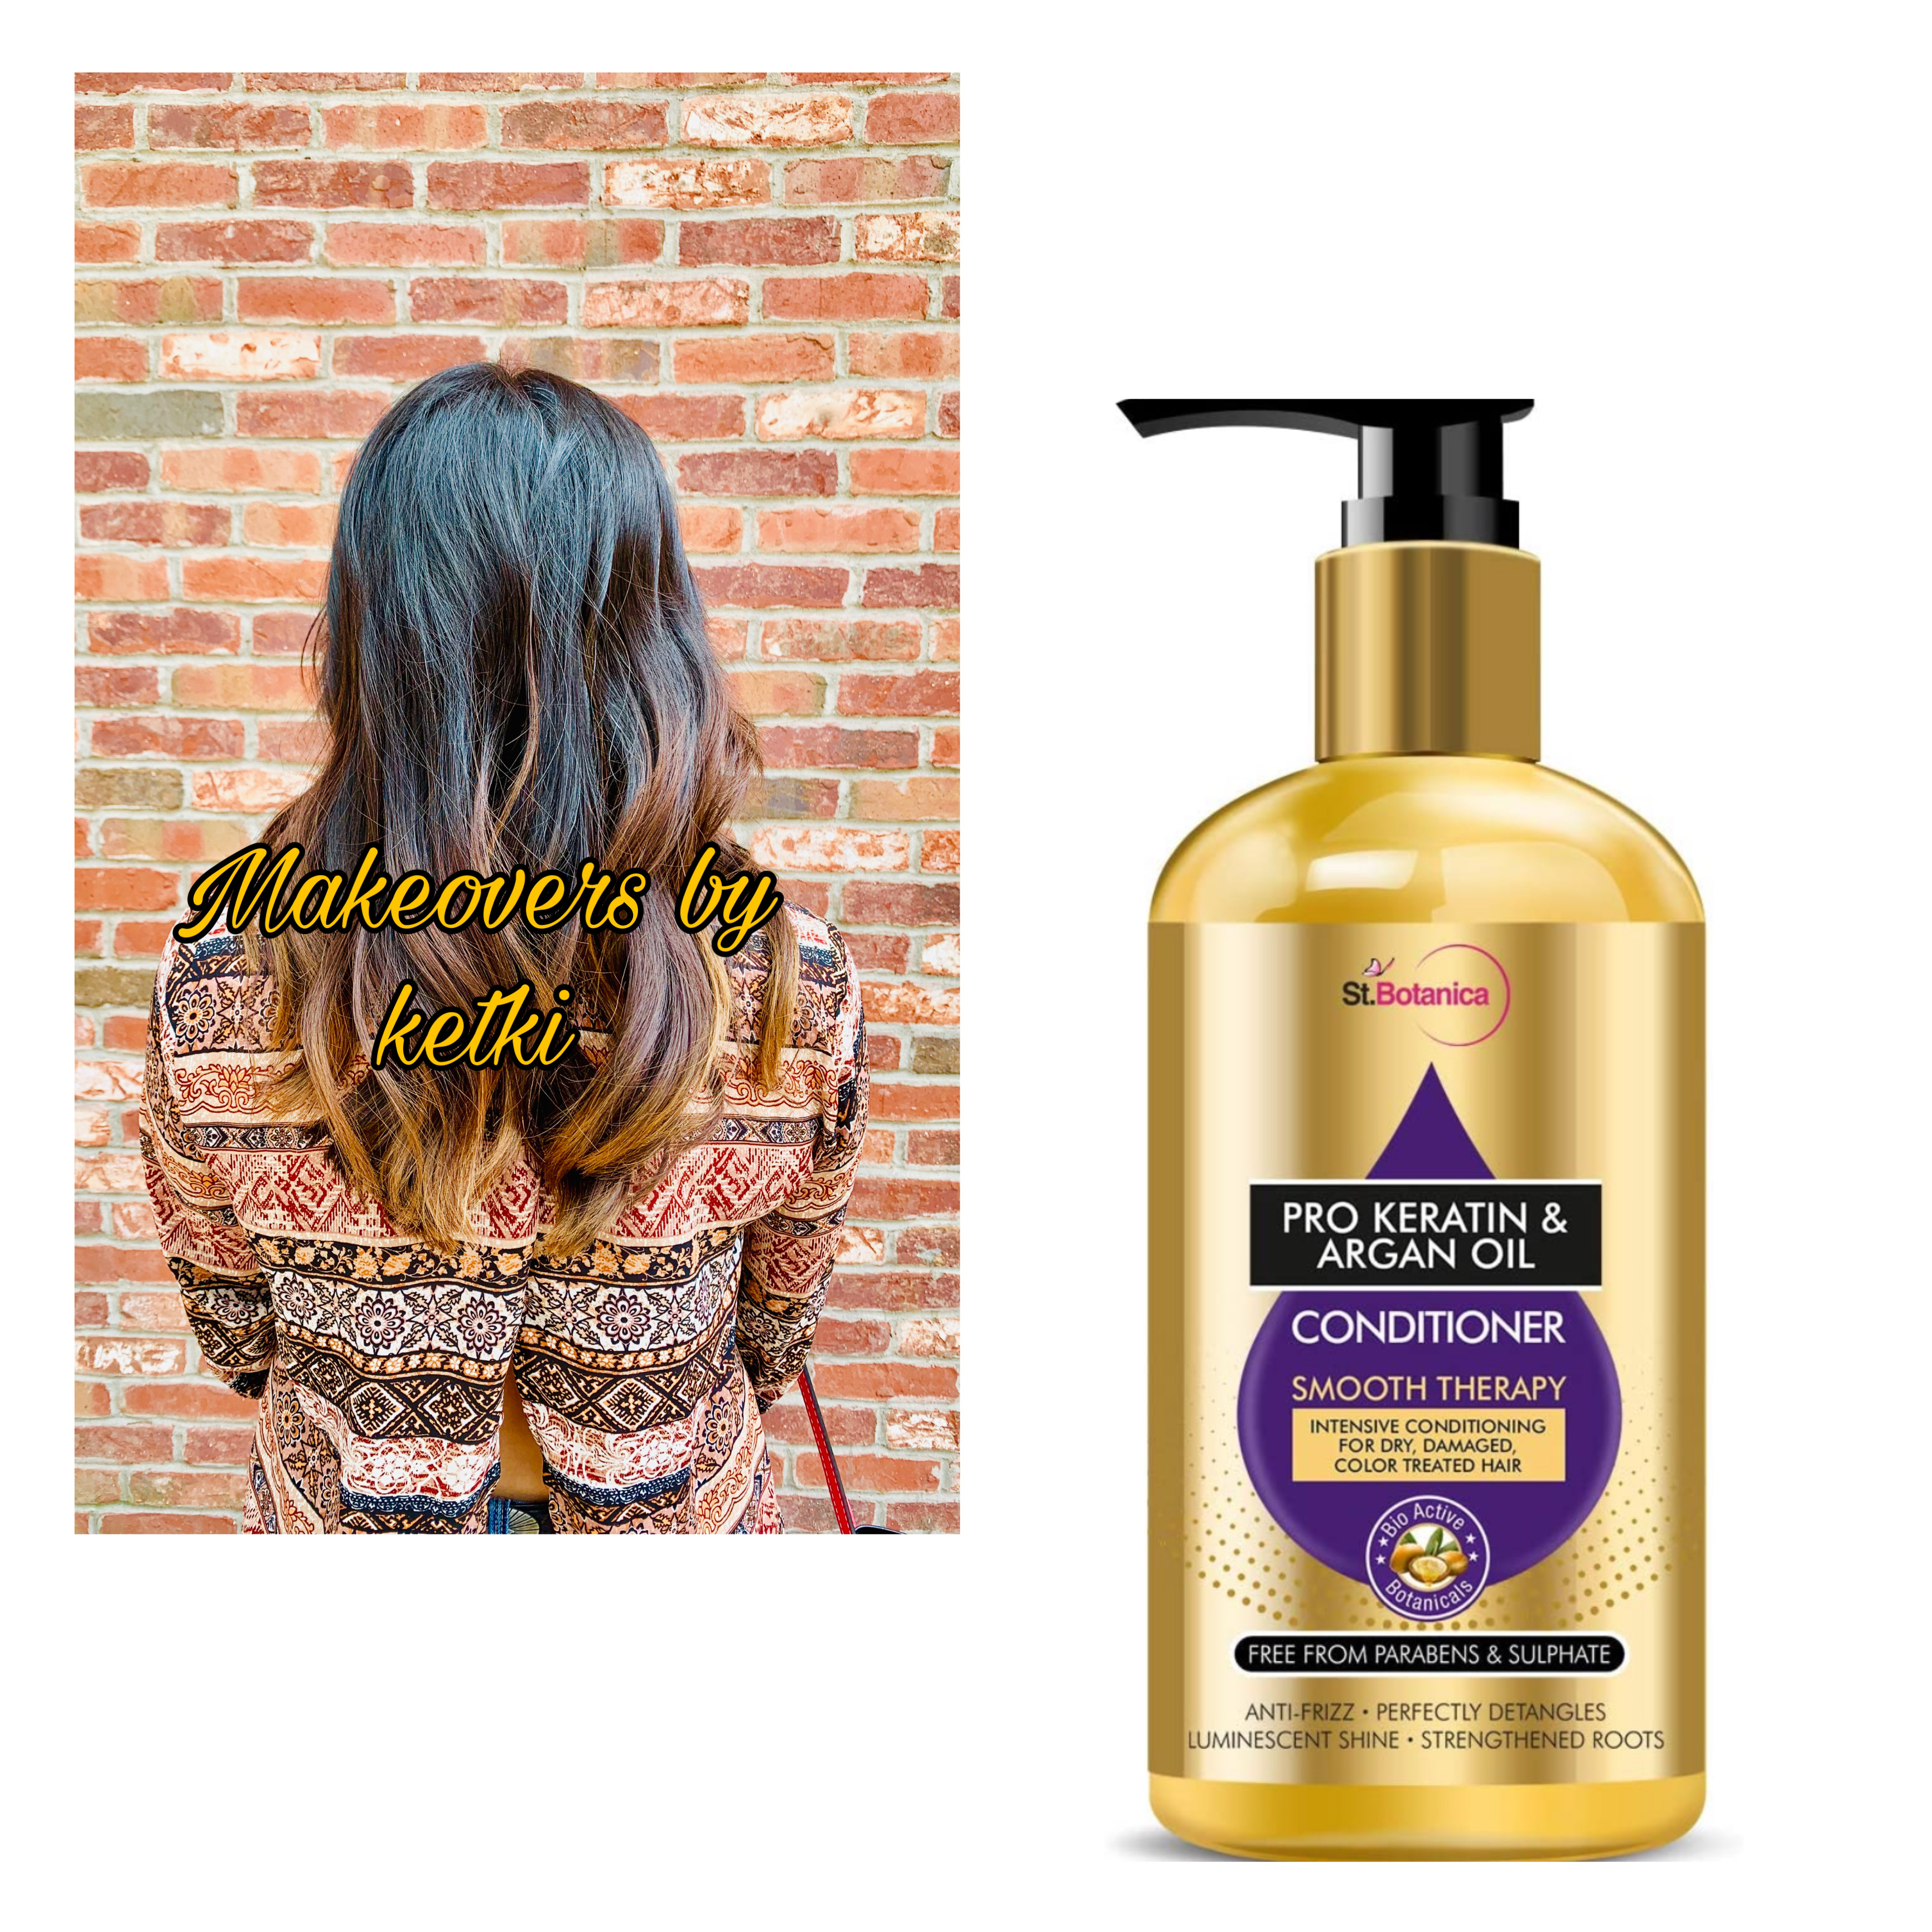 StBotanica Pro Keratin & Argan Oil Conditioner -good product as a lightweight conditioner-By ketki1504